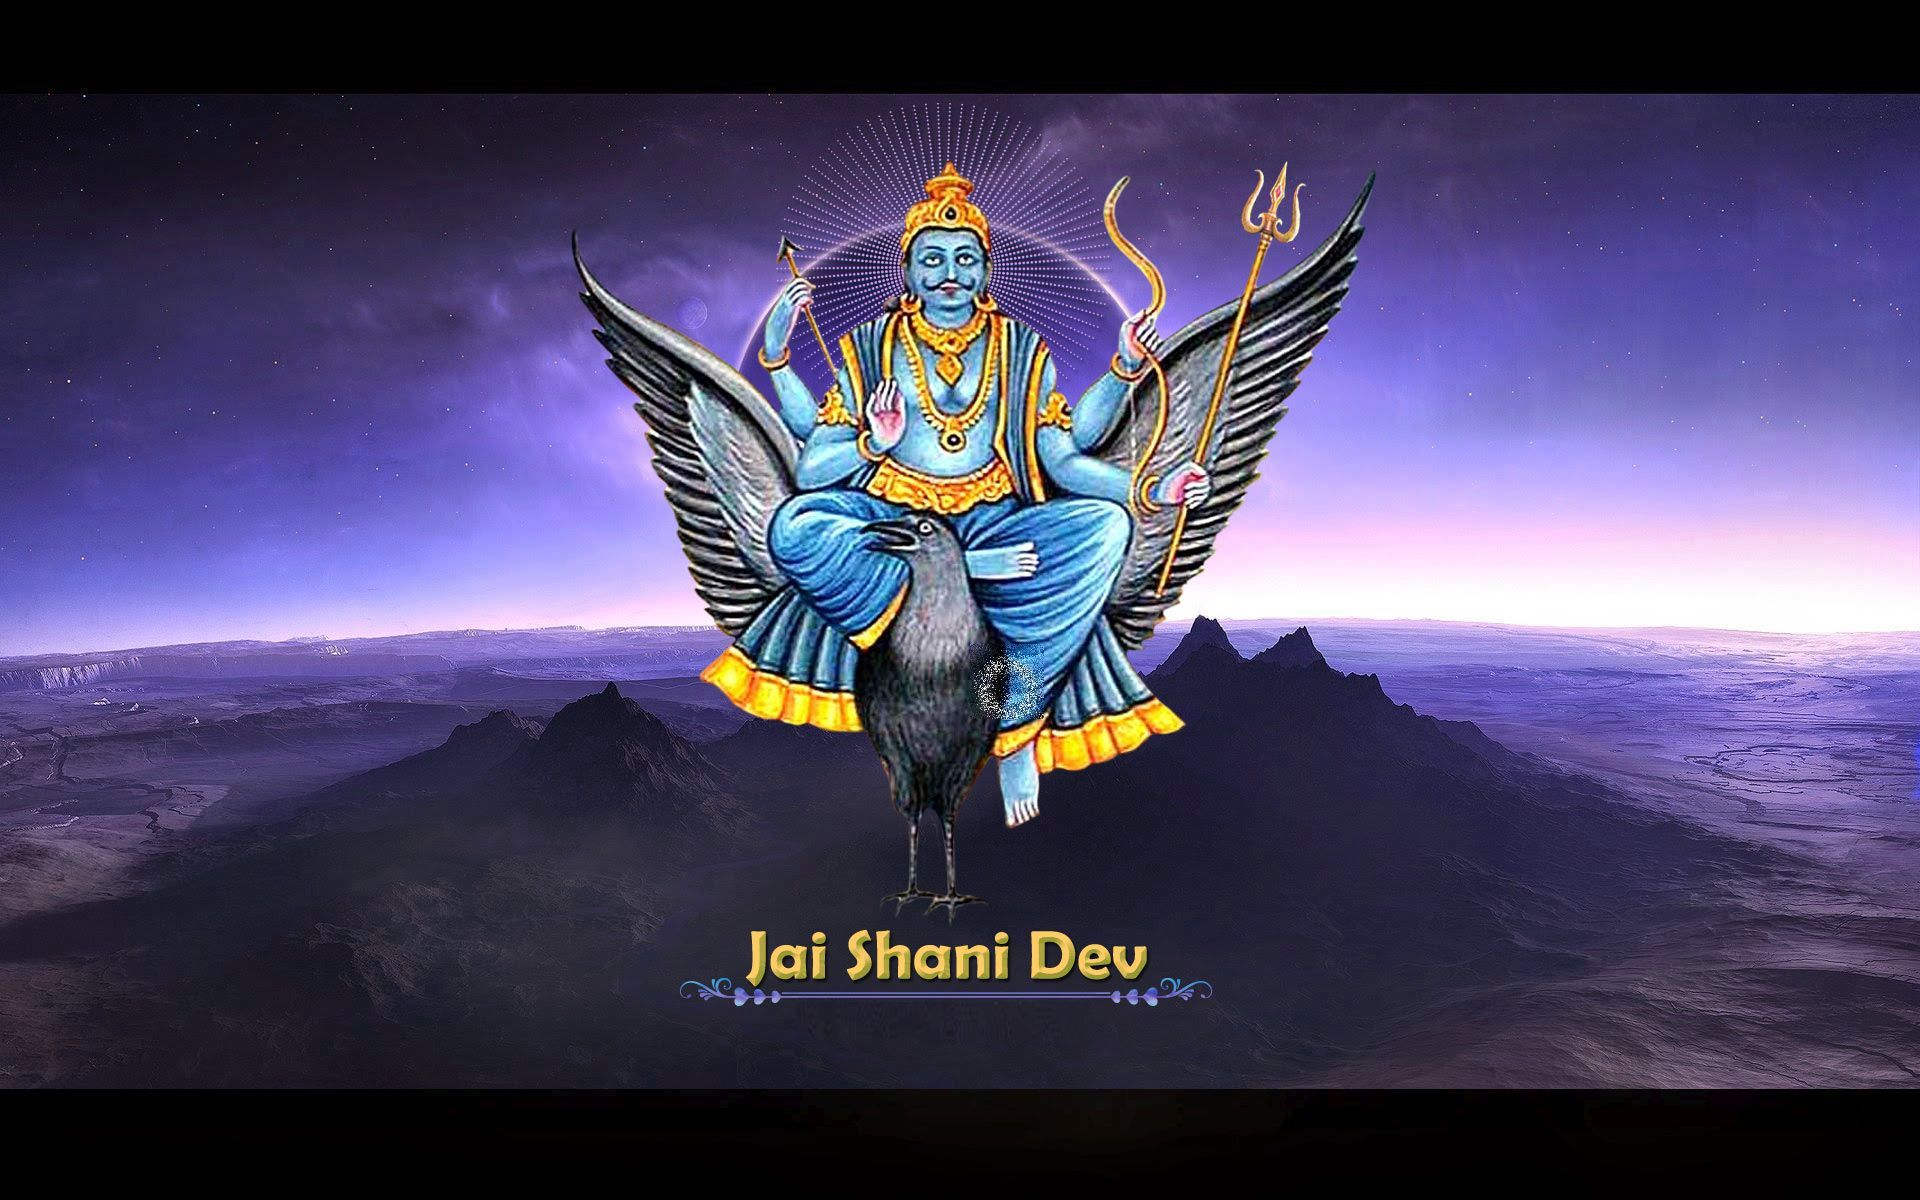 Shanidev Wallpaper K Shani Dev Religious Wallpaper Desktop Wallpapers Wallpaper Backgrounds Photos